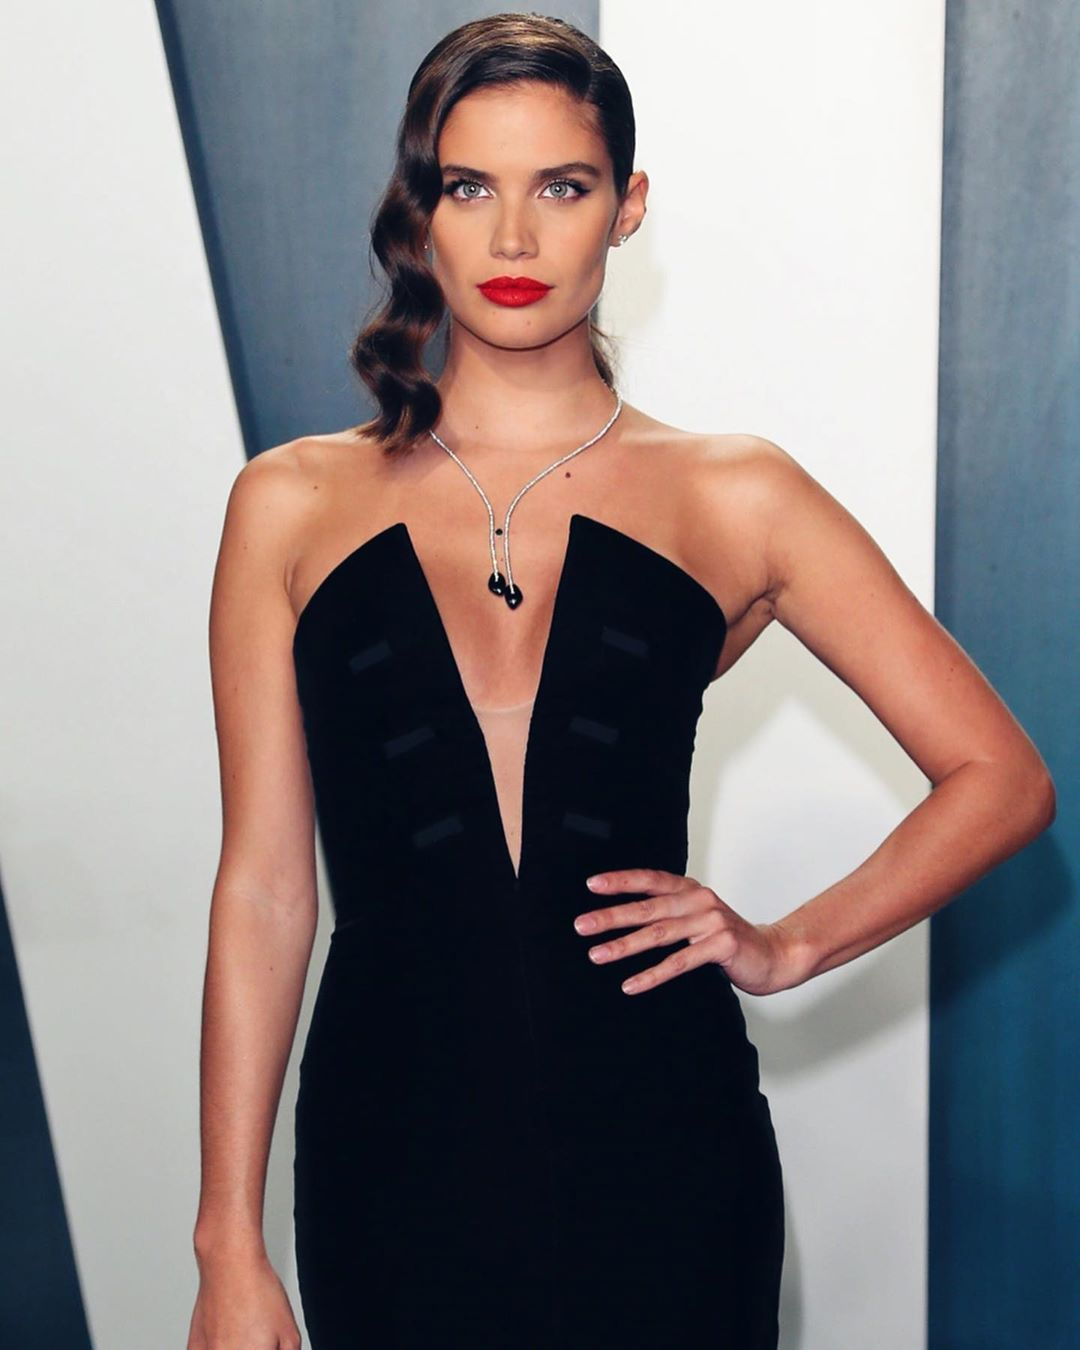 "Sara Sampaio on Instagram: ""Thank you @vanityfair for such a fun night 🤗 @armanibeauty @giorgioarmani"""